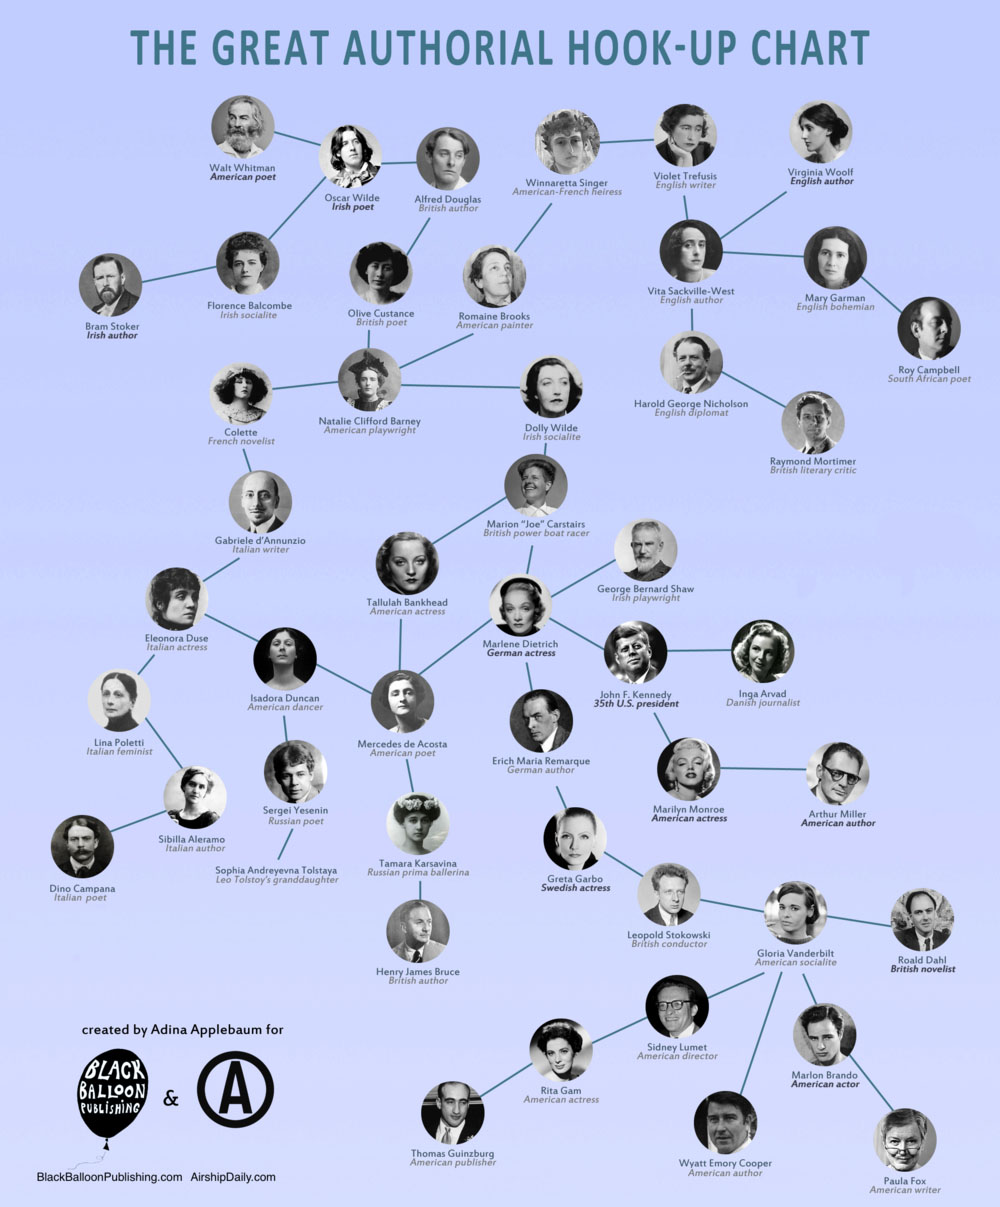 The Great Authorial Hook-Up Chart (Click to enlarge)